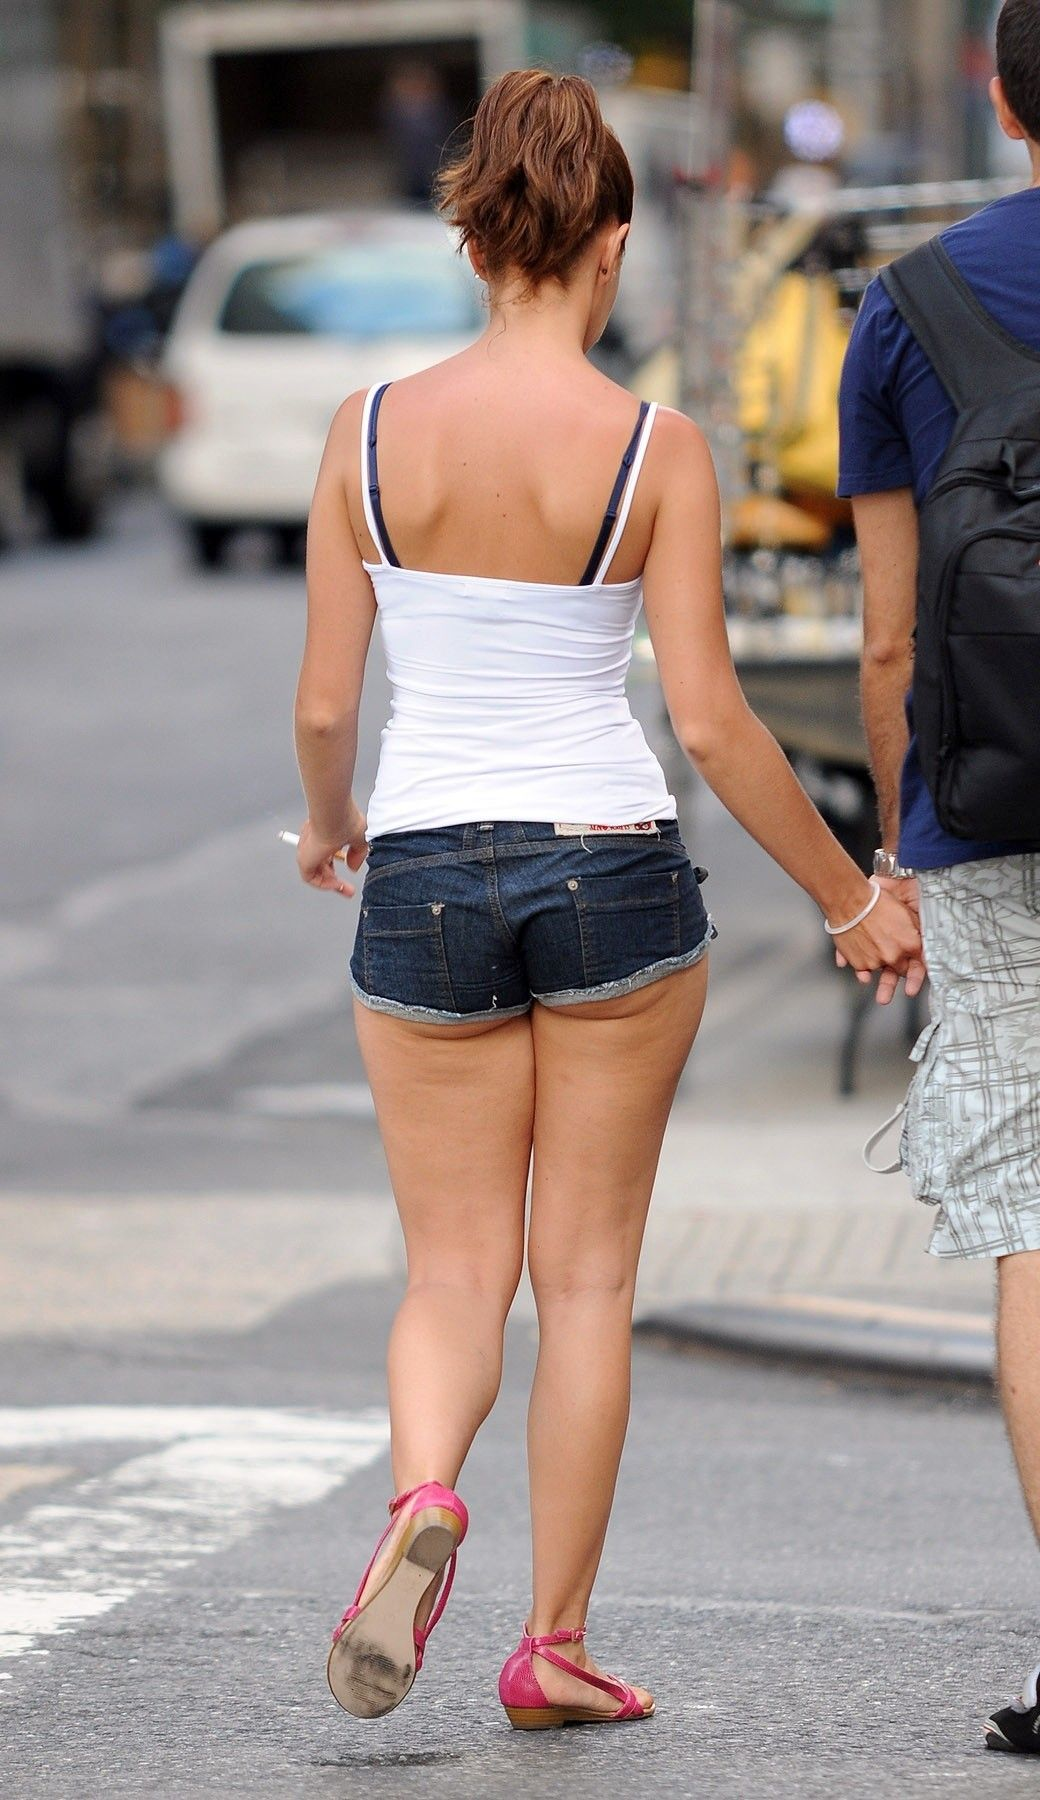 girls shorts jean in Candid tight